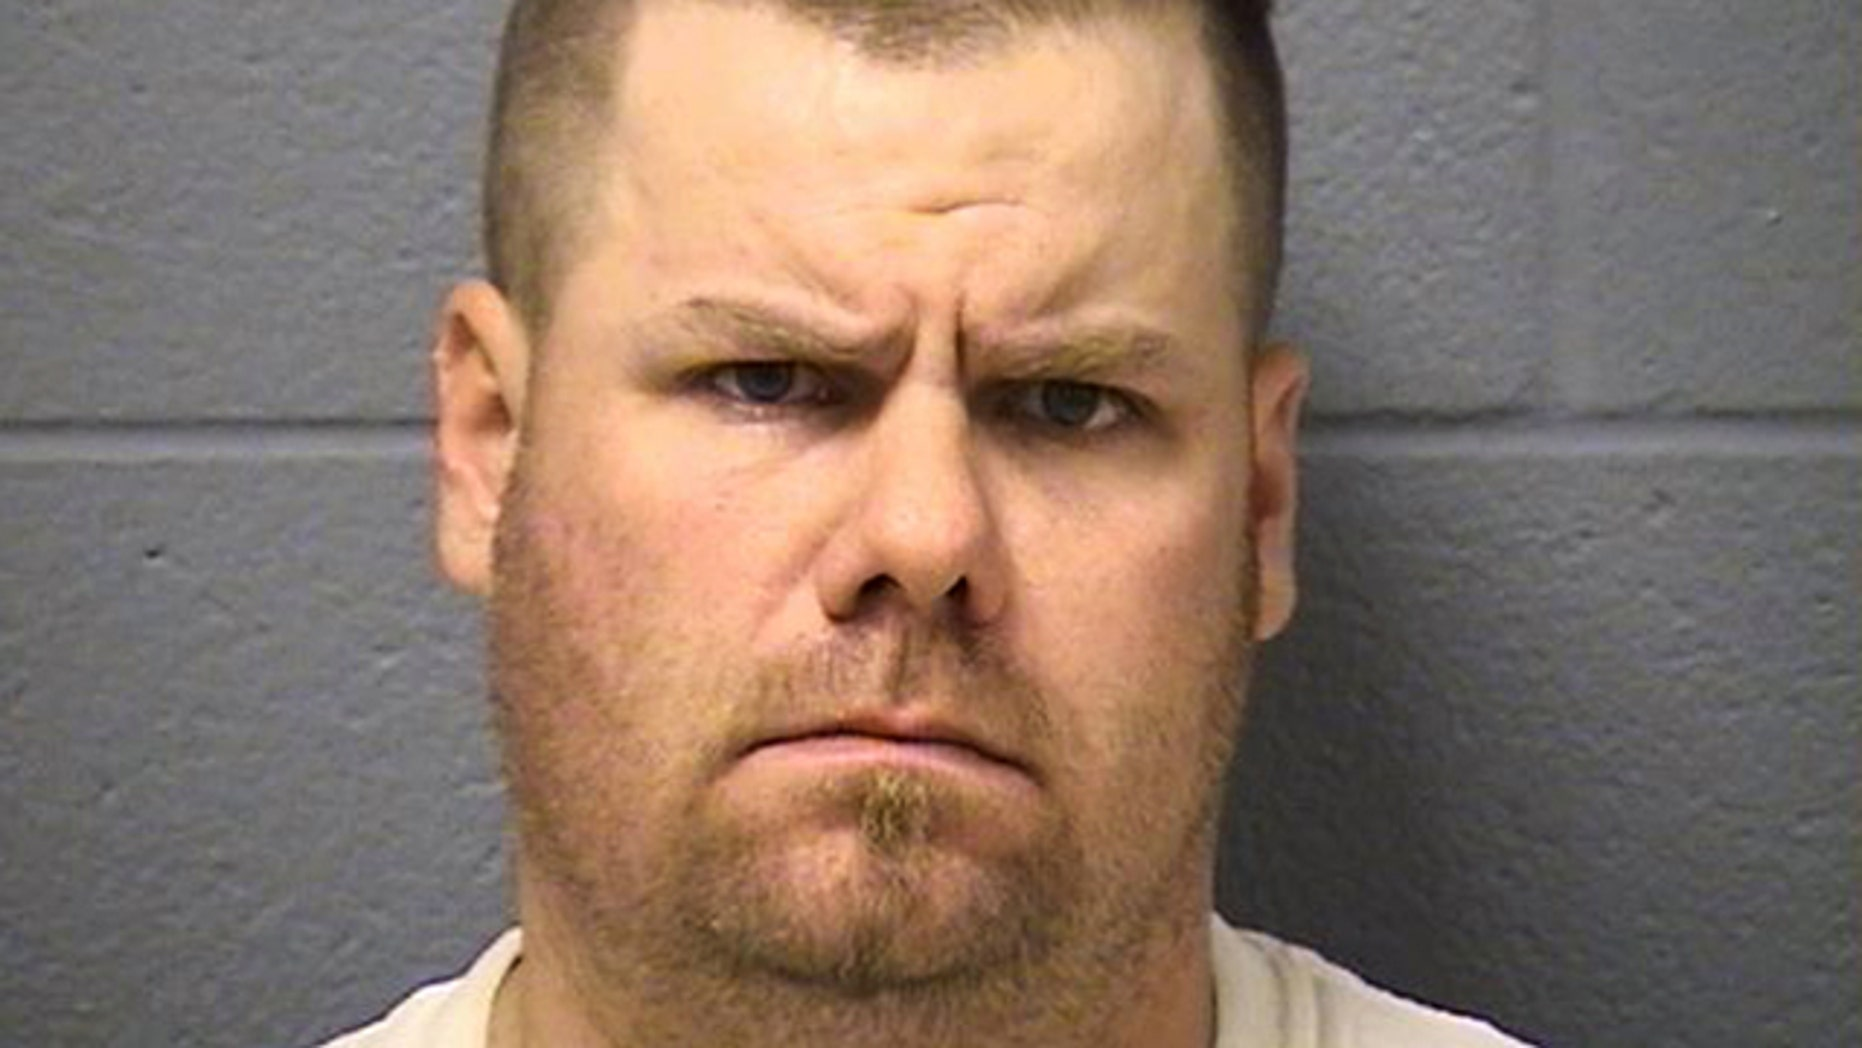 Brian Dorian, seen in this photo released by the Will County Sheriff's Office, is a former Illinois police officer suspected in a series of shootings that killed one man and wounded two others.